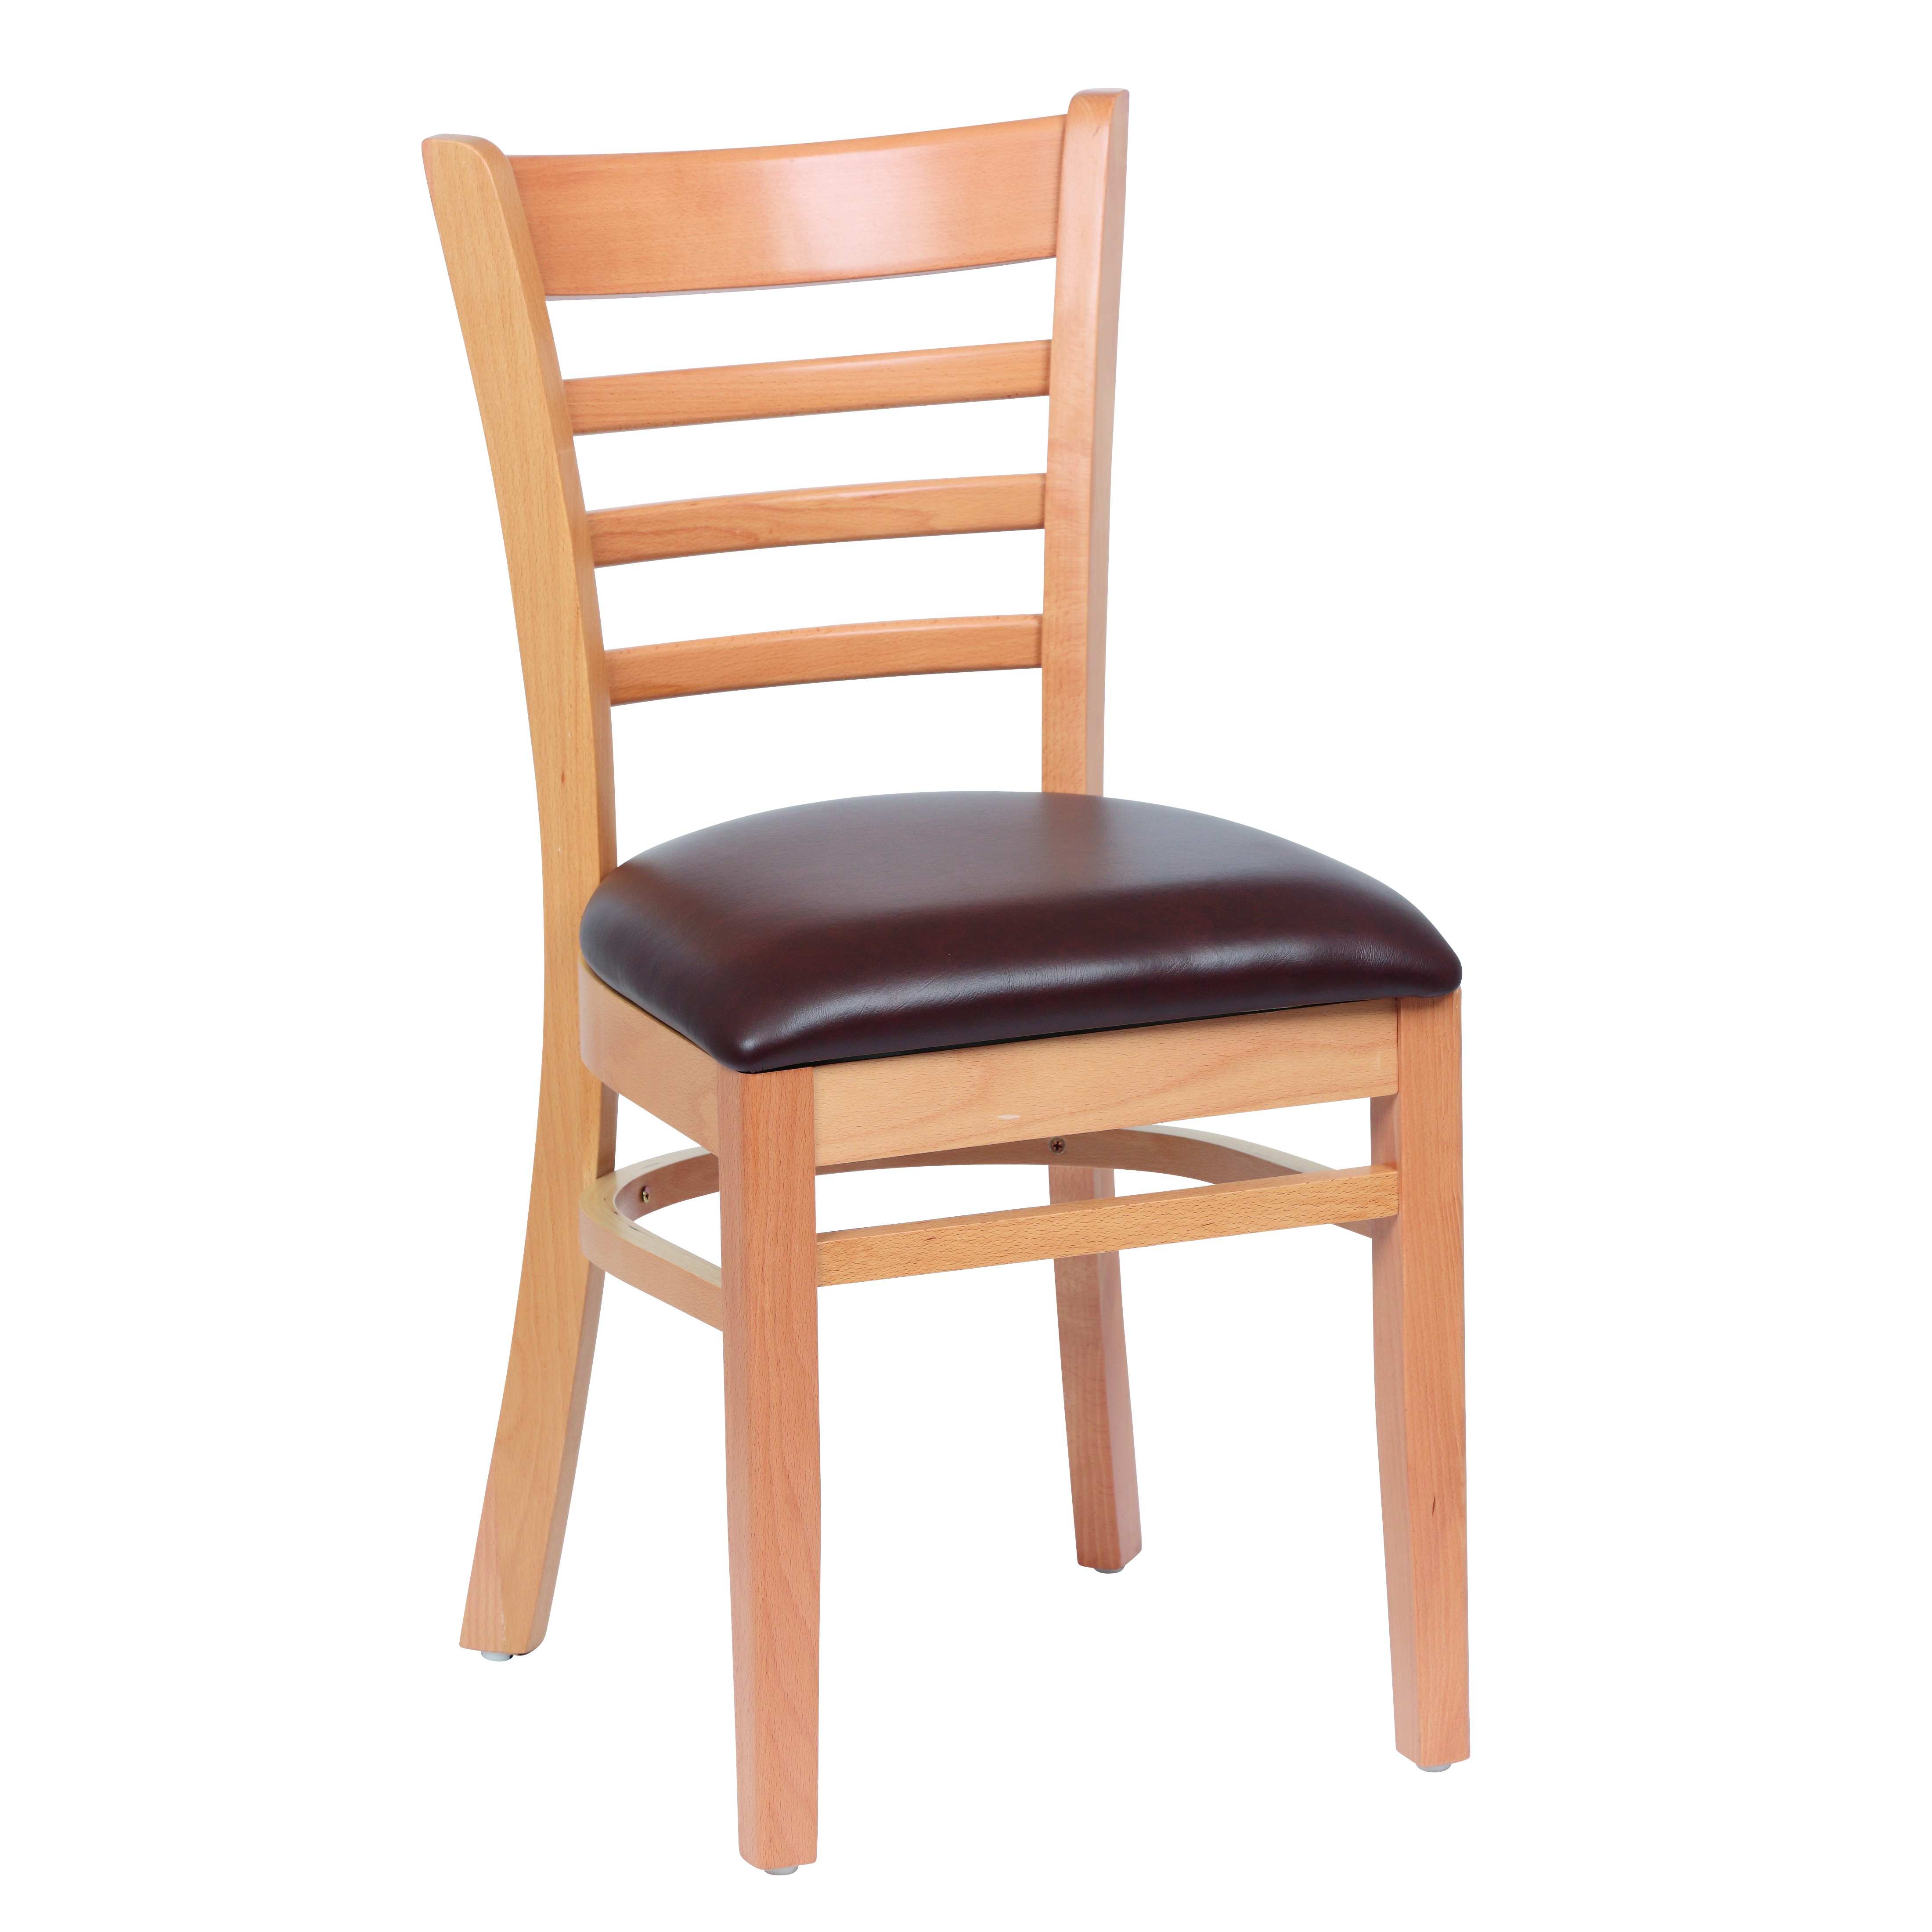 Royal Industries ROY 8001 N BRN chair, side, indoor